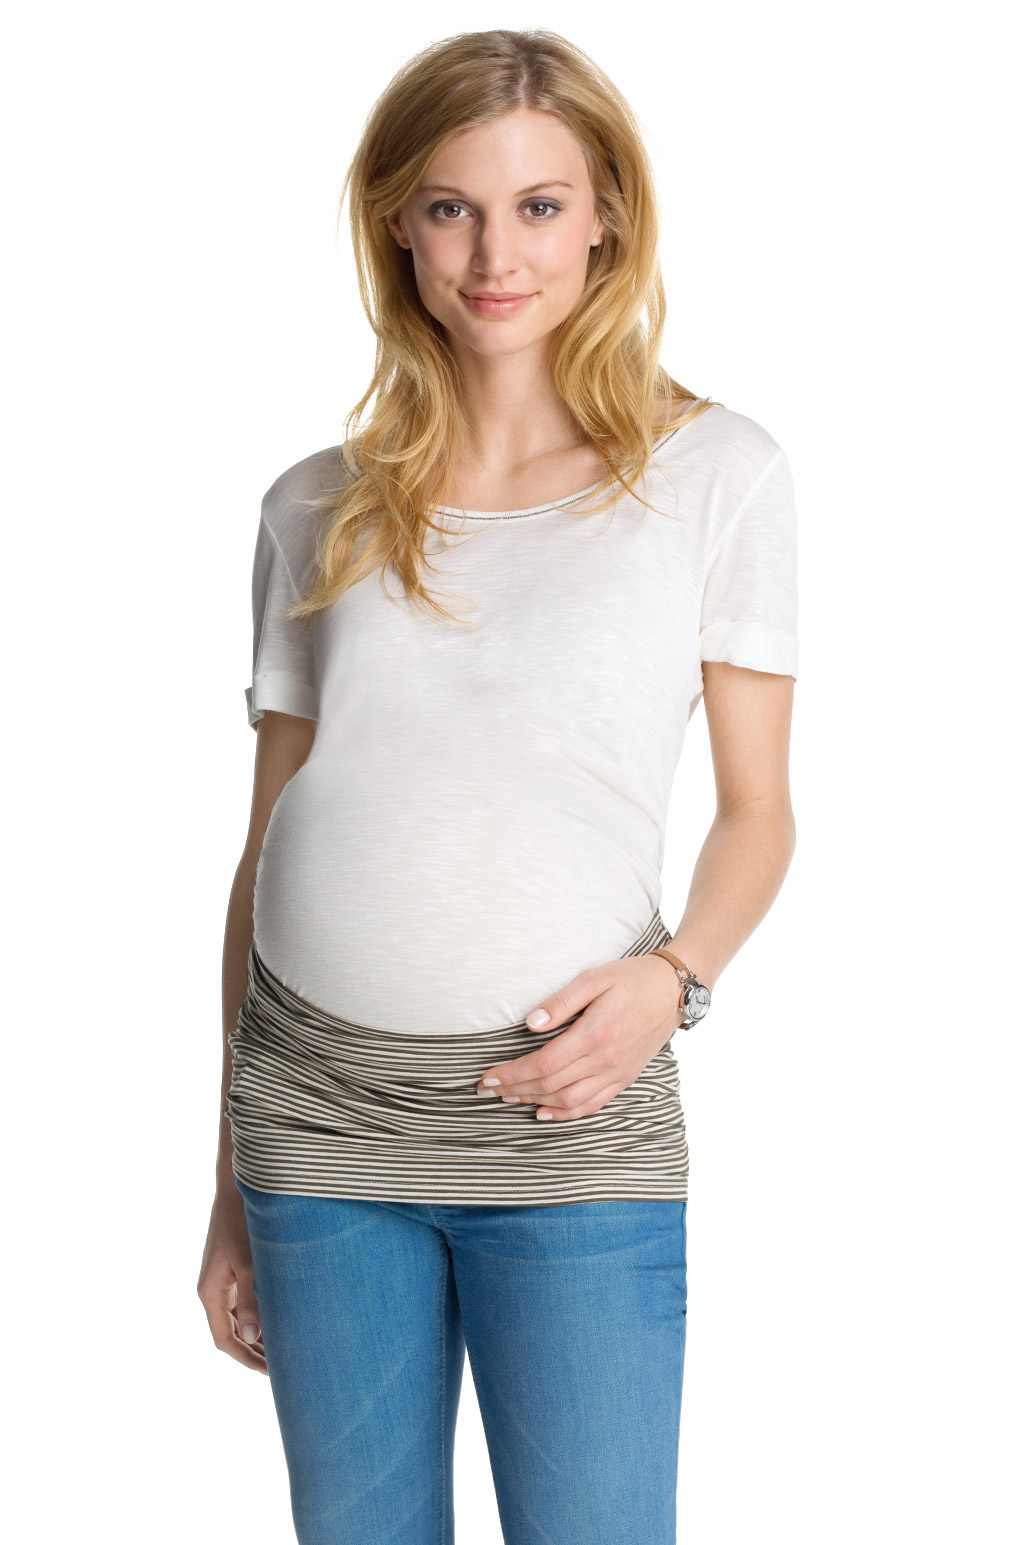 Esprit Belly Belt Bauchband